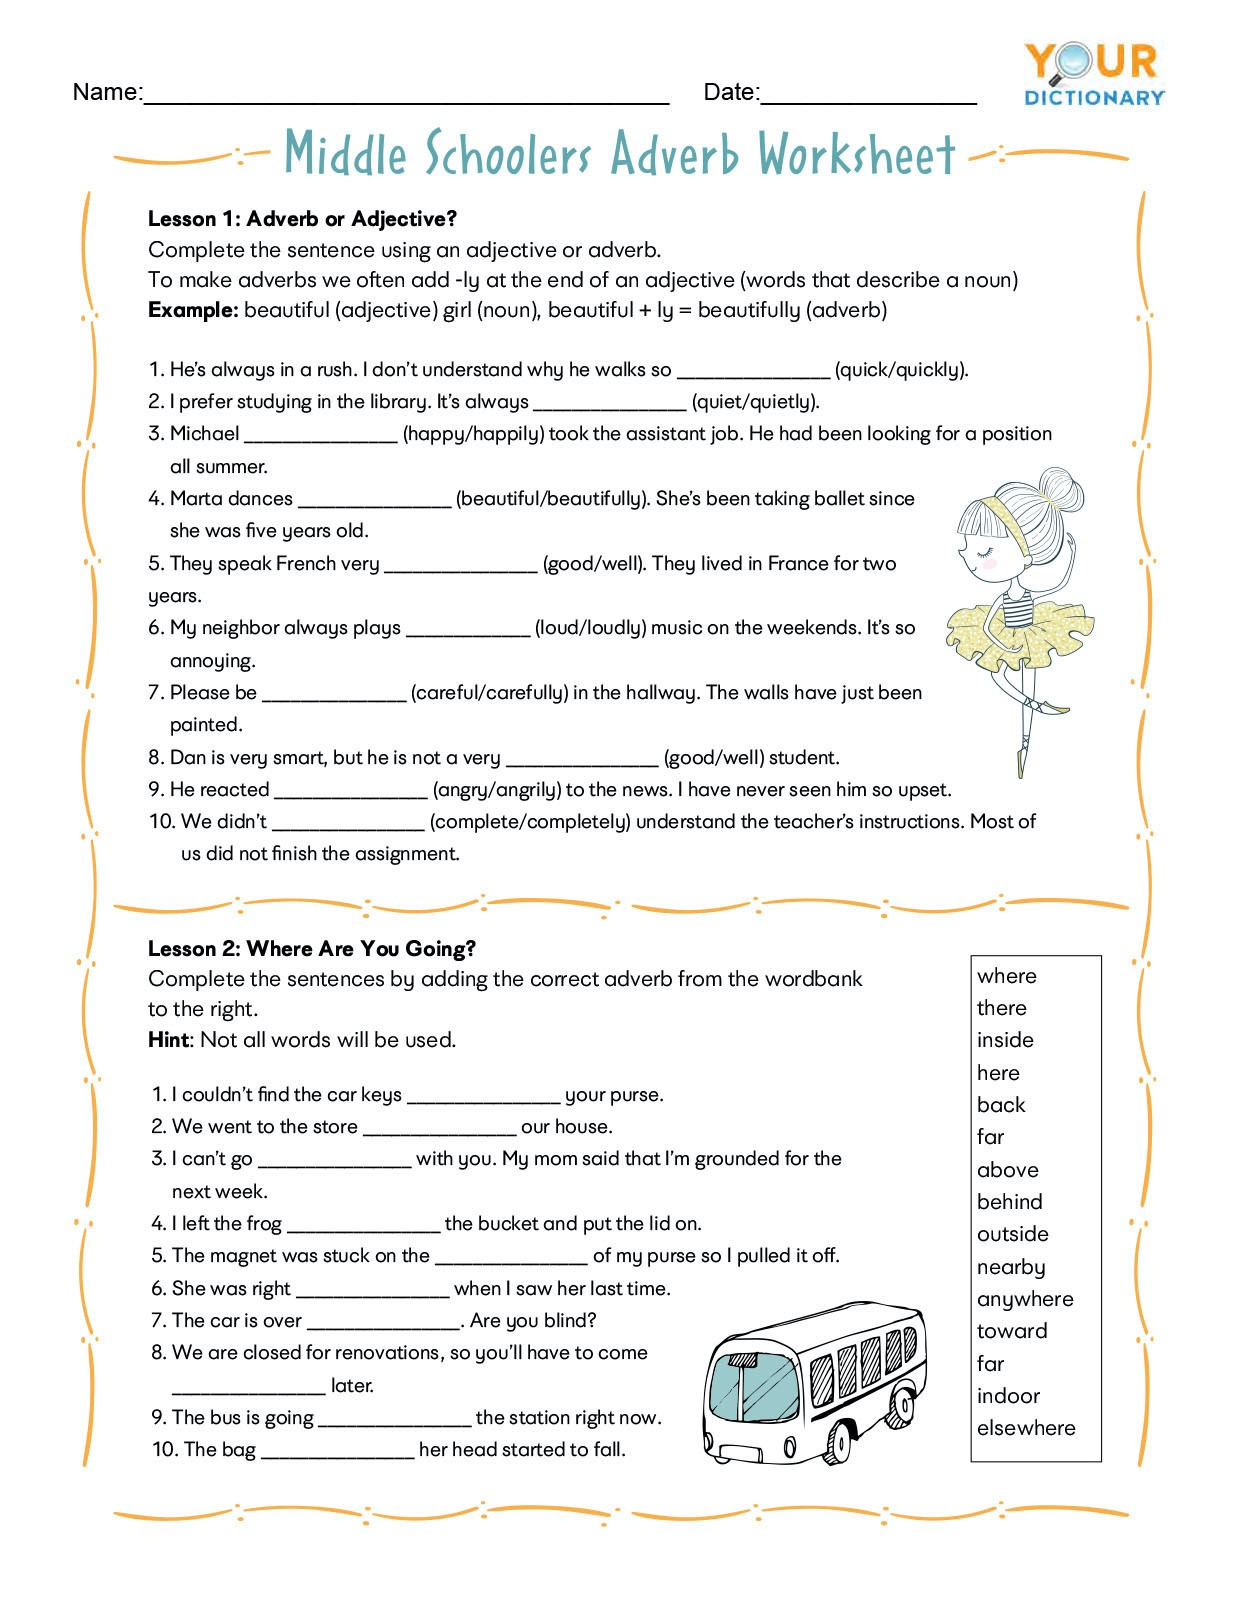 Grammar Worksheets High School Adverb Worksheets for Elementary and Middle School